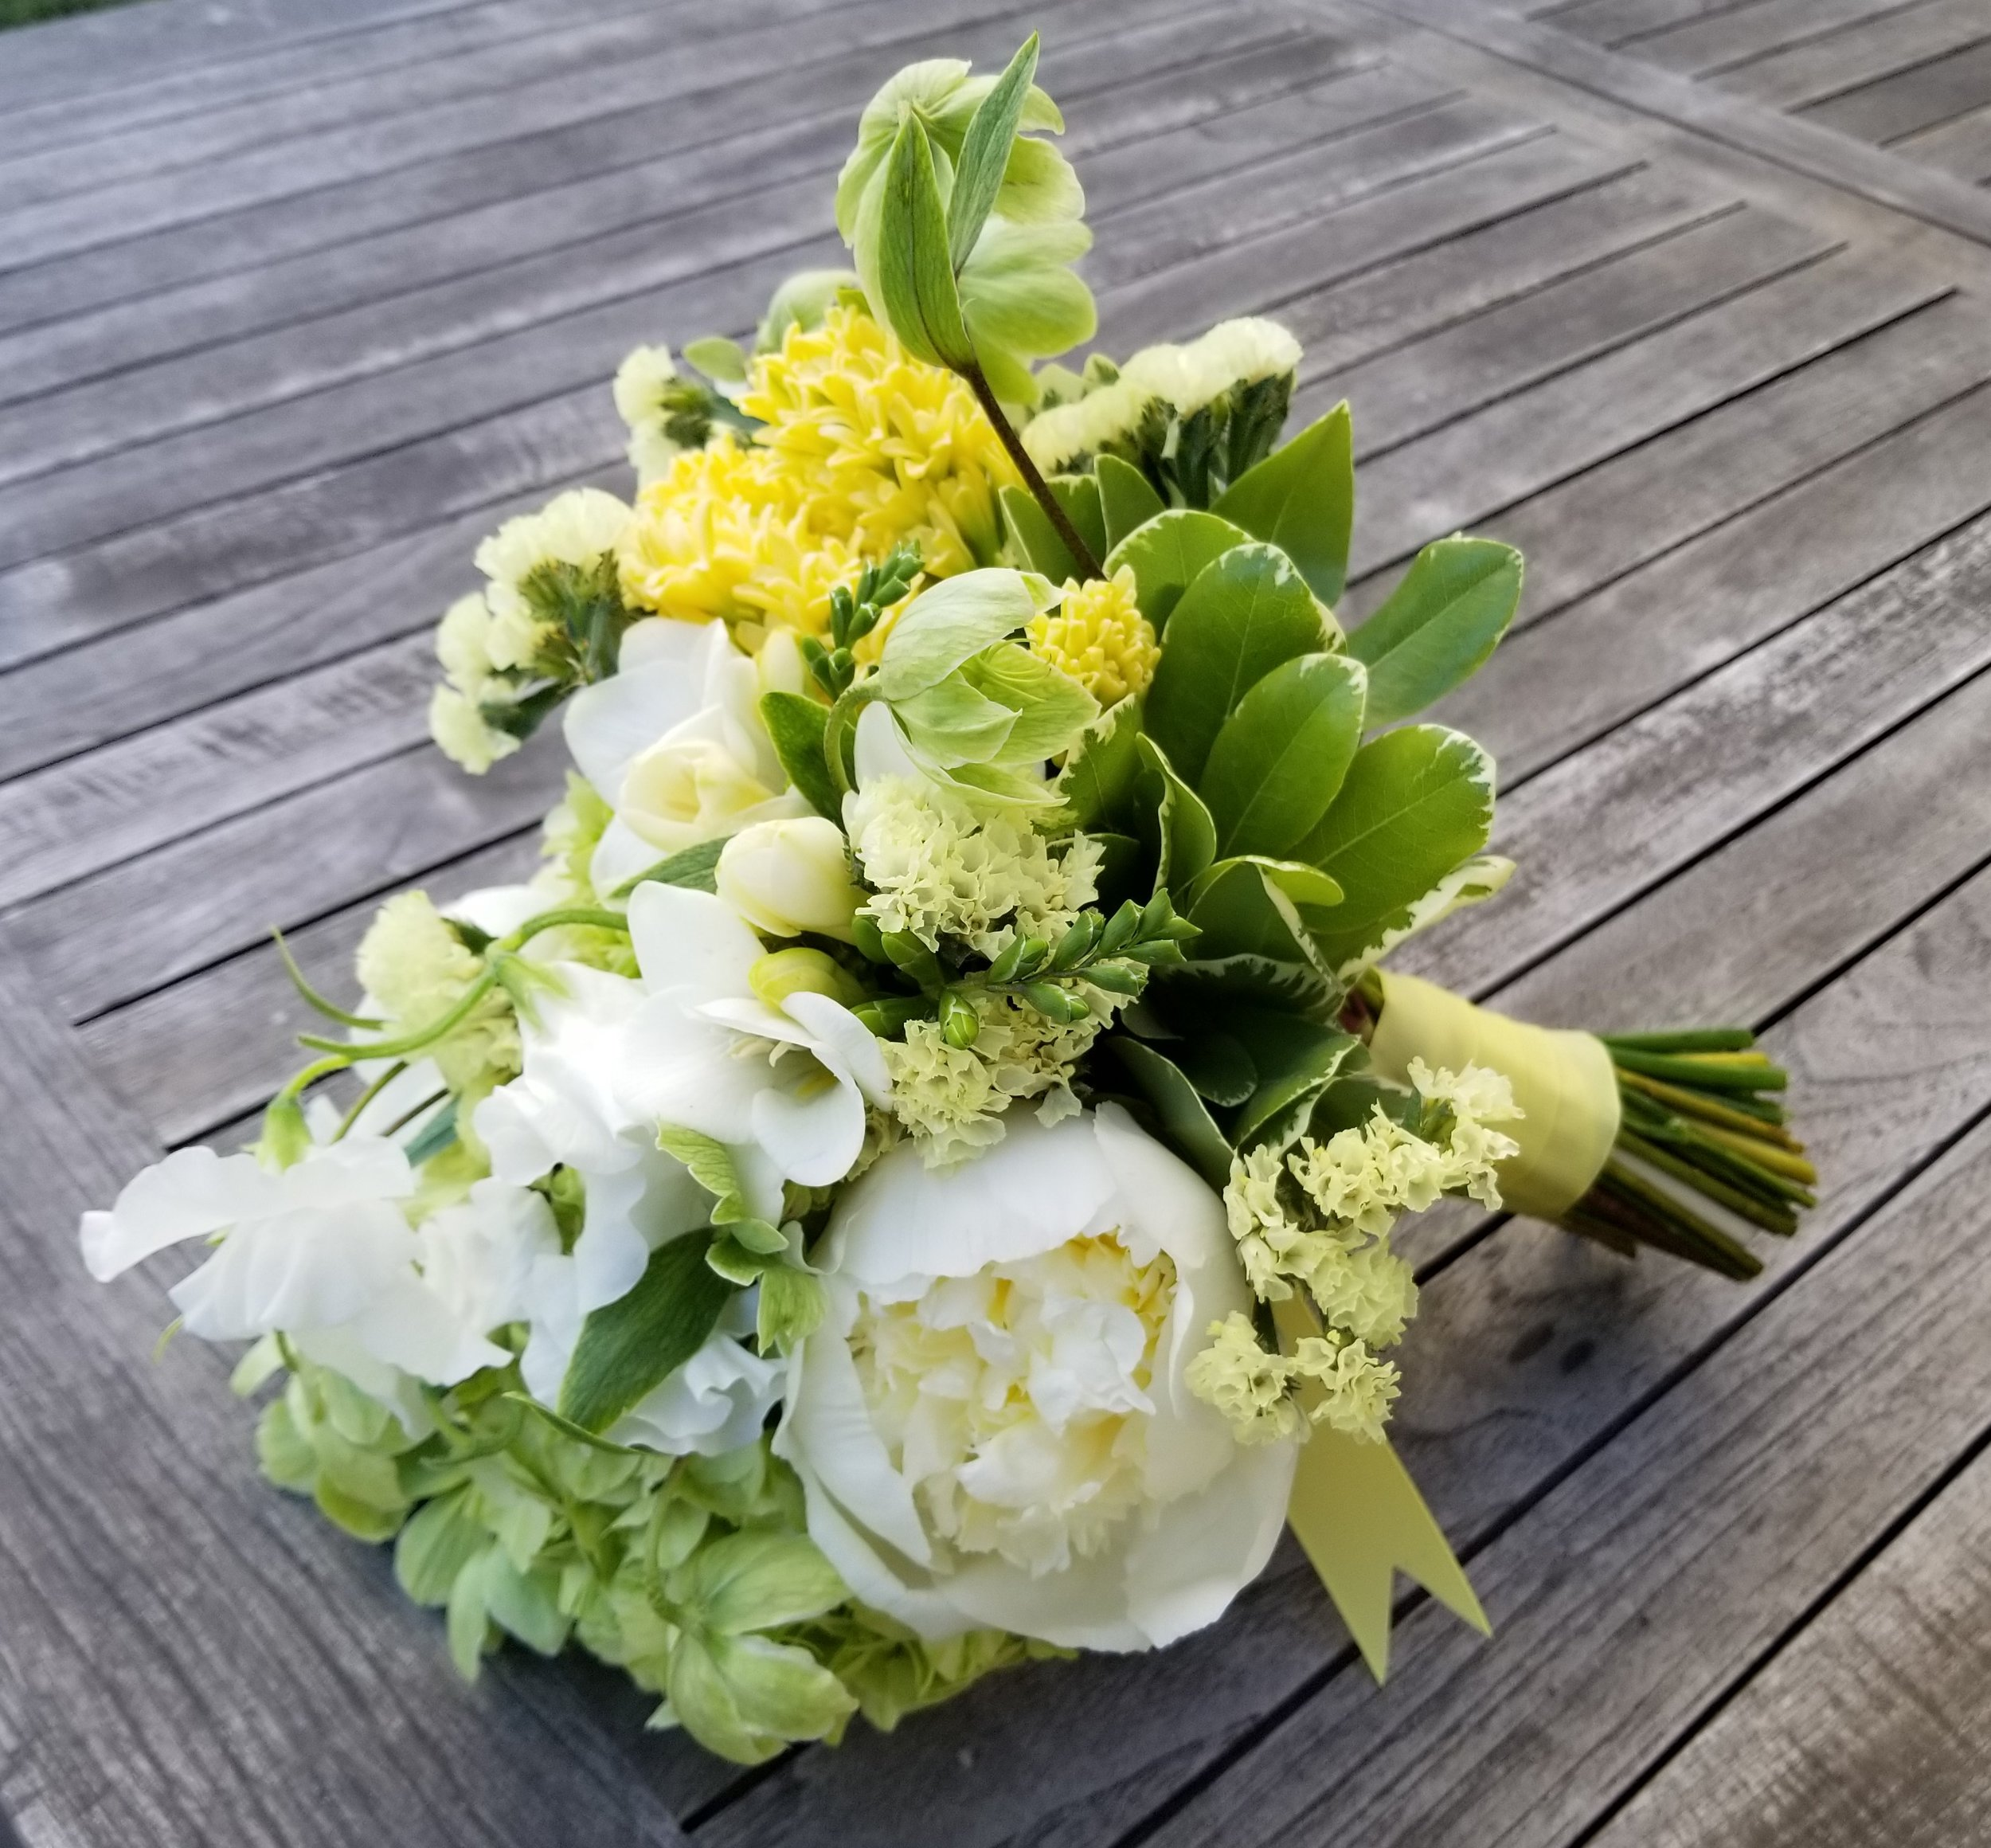 A spring hand-tied bouquet in yellow, green, and white.